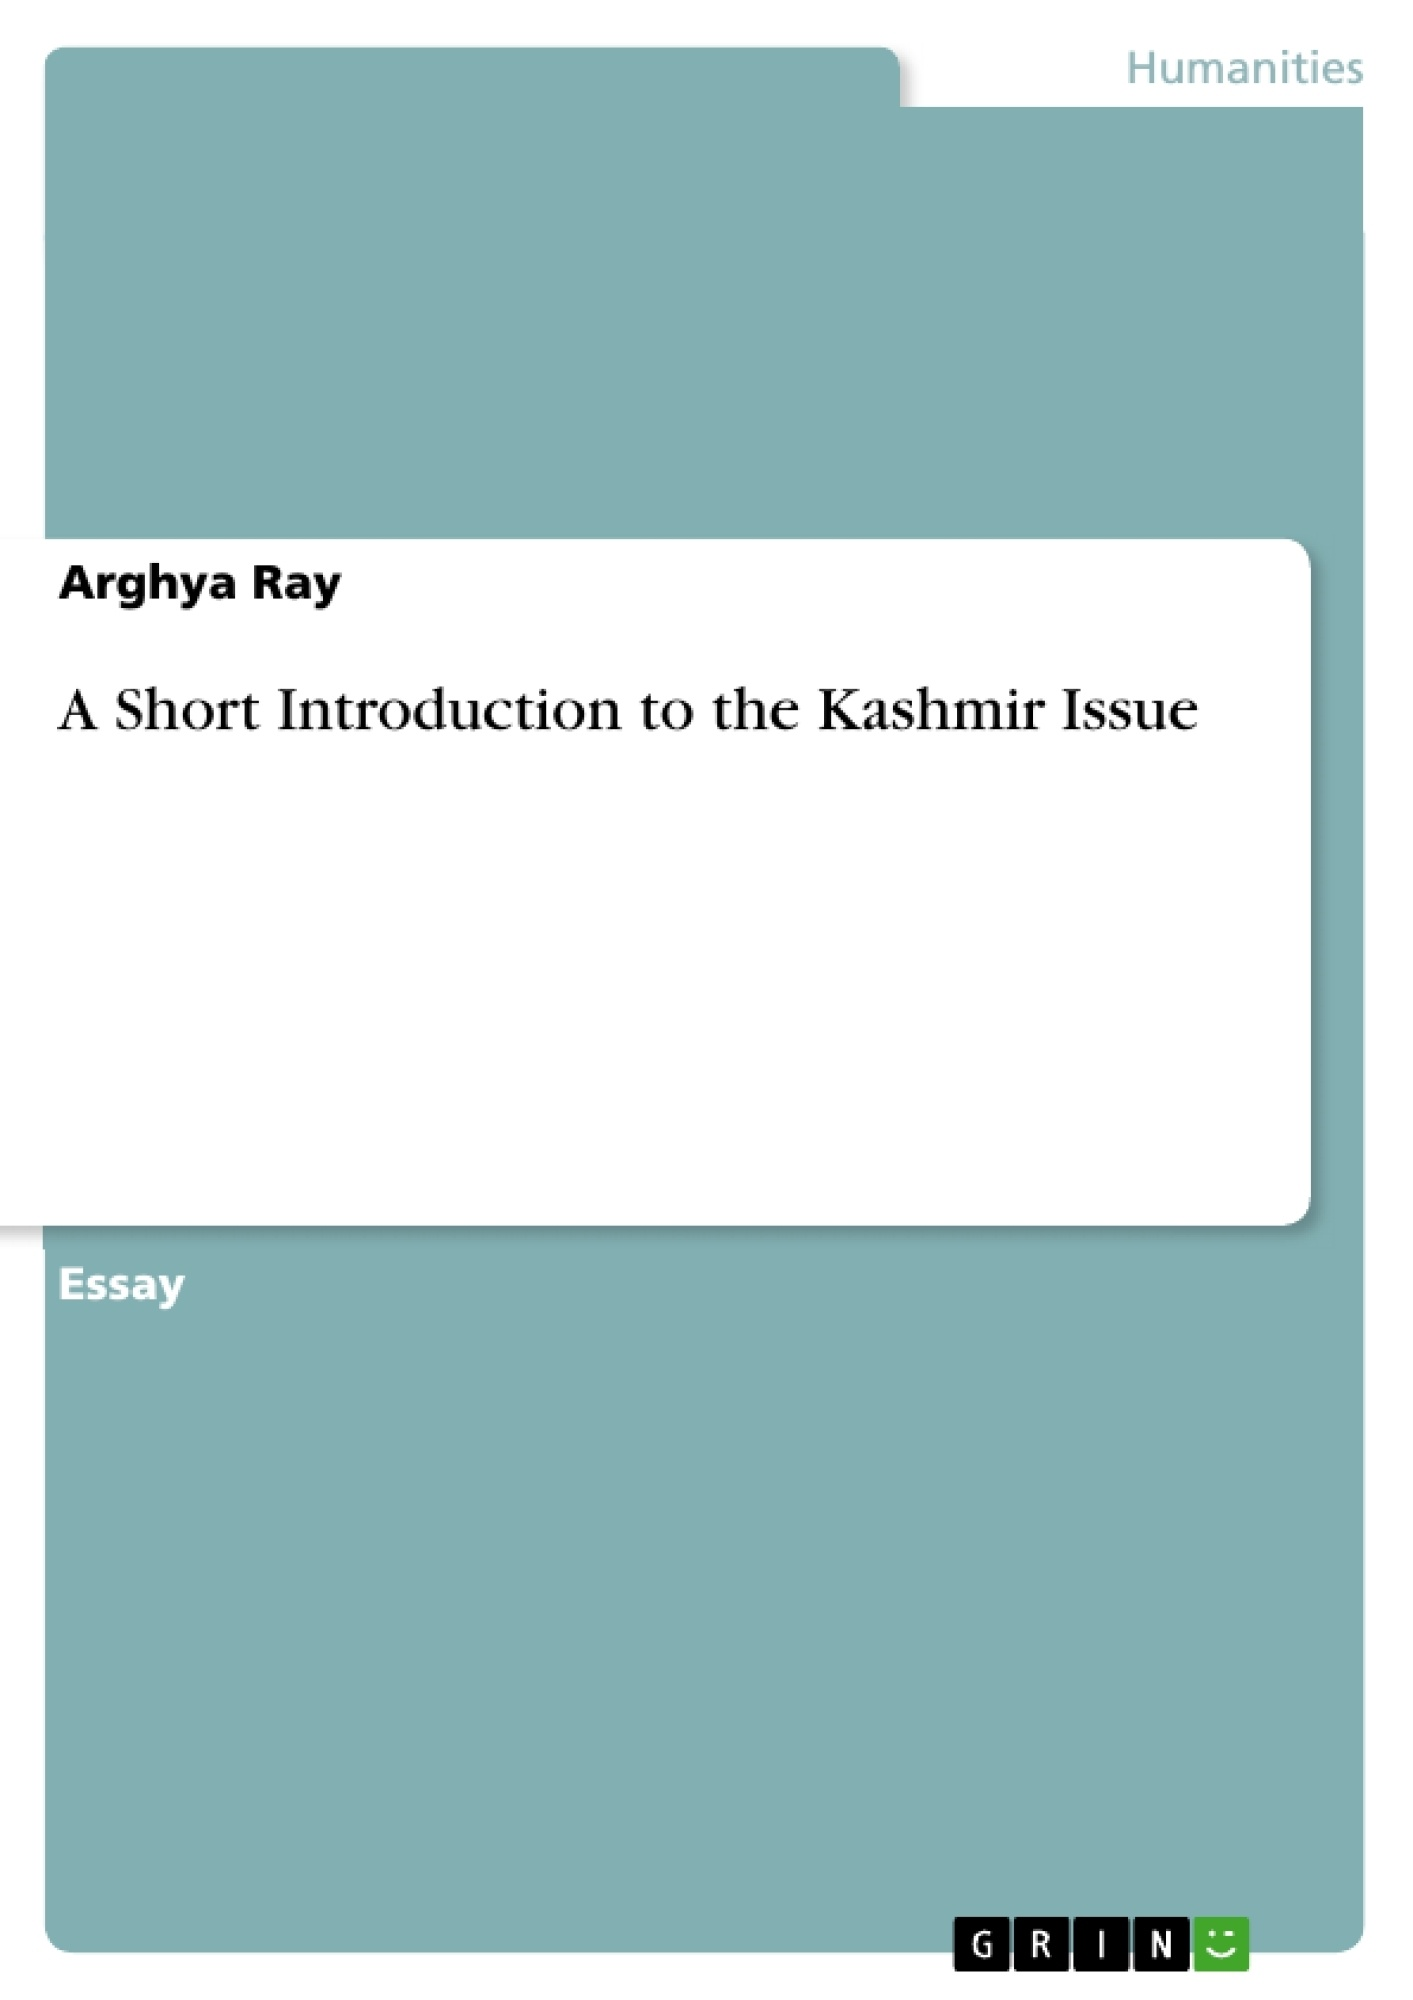 a short introduction to the kashmir issue publish your master s a short introduction to the kashmir issue publish your master s thesis bachelor s thesis essay or term paper